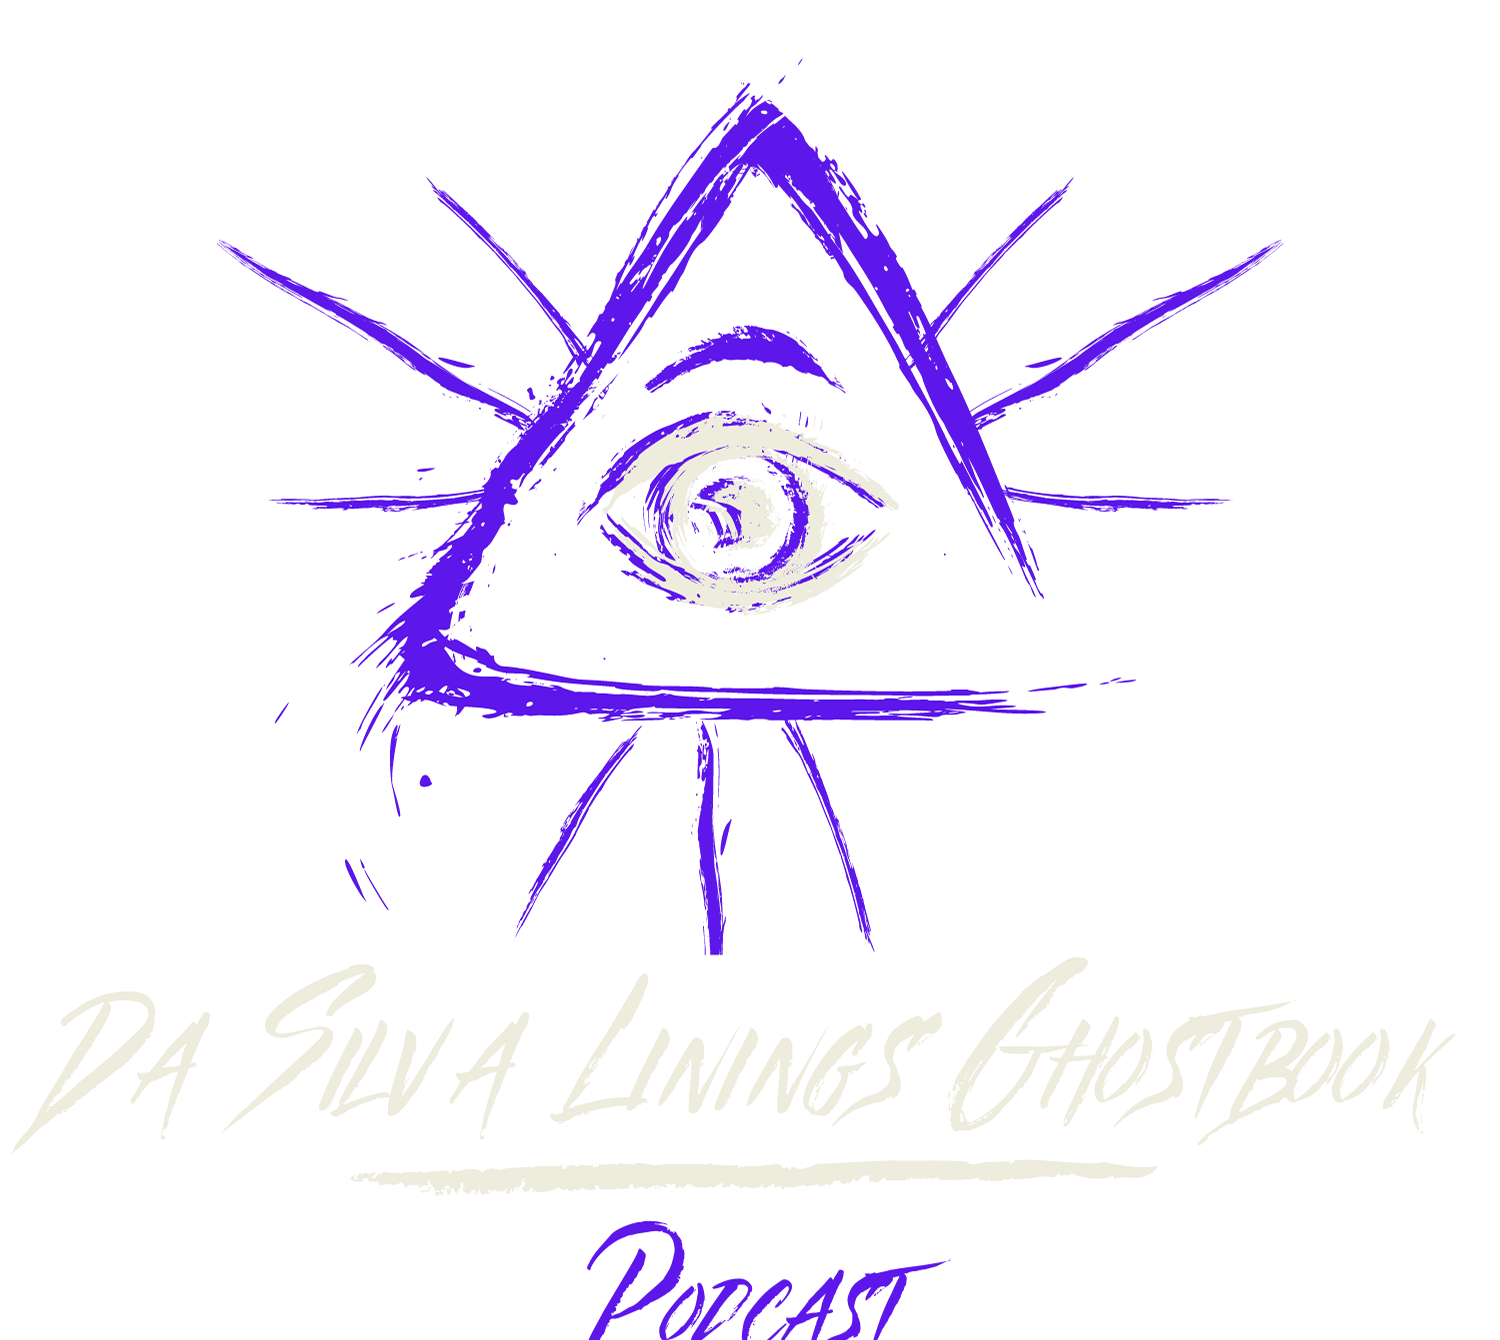 Da Silva Linings Ghostbook Podcast